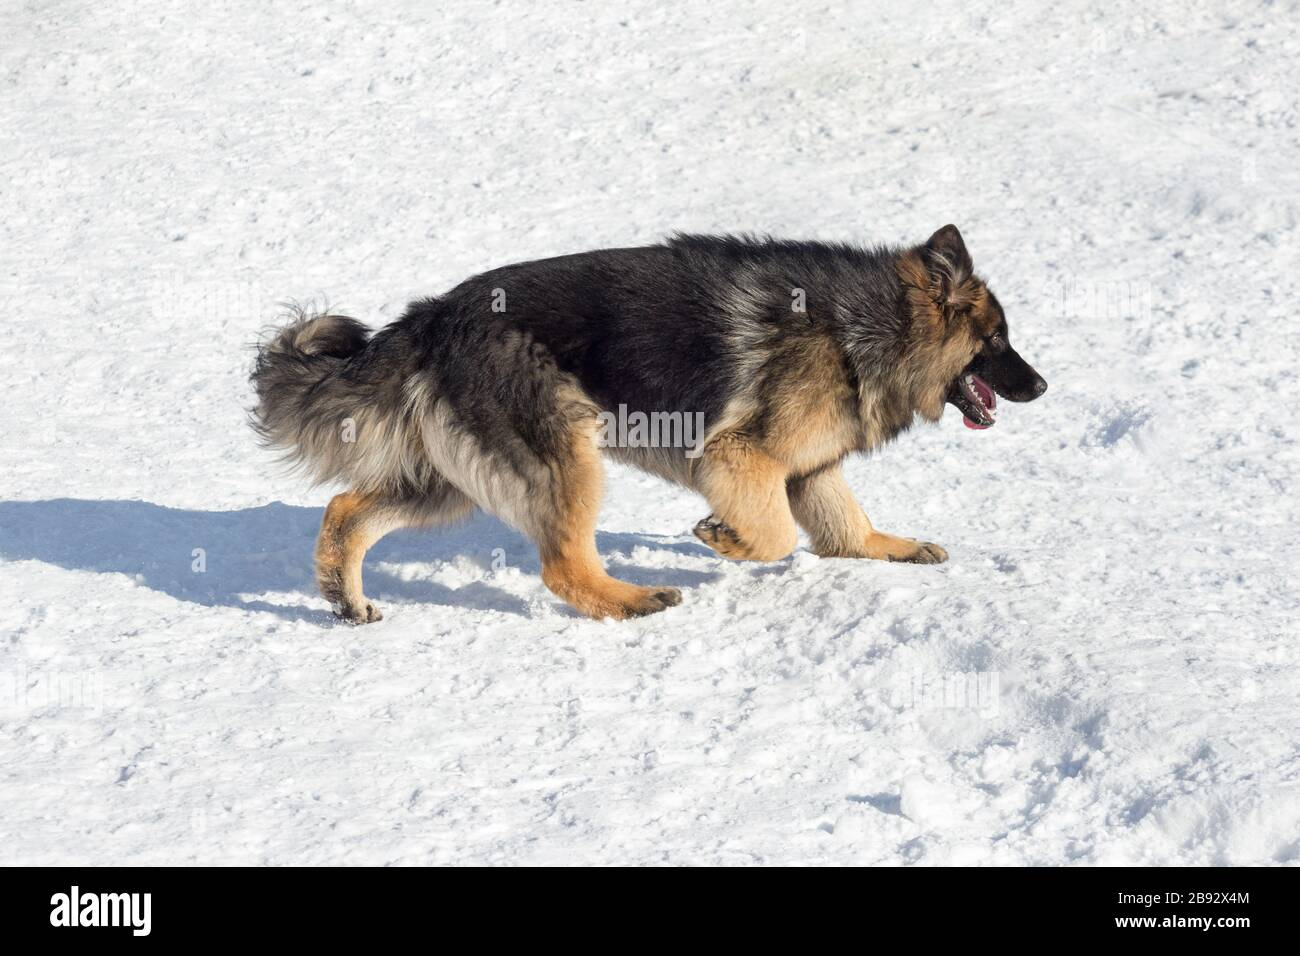 Long Haired German Shepherd High Resolution Stock Photography And Images Alamy